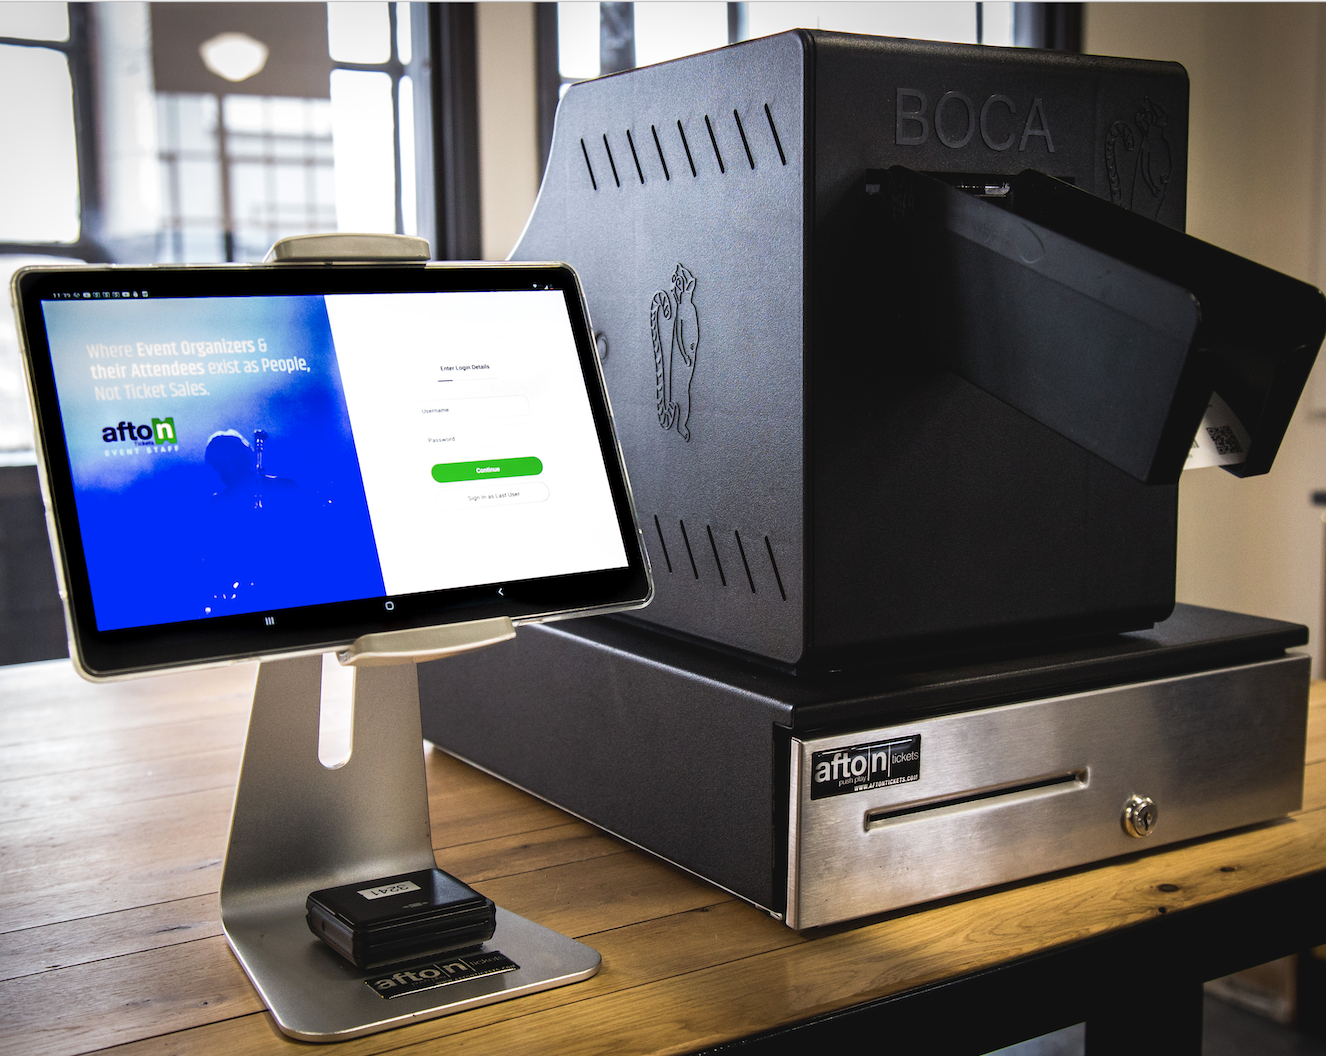 Afton Tickets Full Box Office: Touch screen POS, full cash management suite, smart-locking cash drawer, and ticket printer.